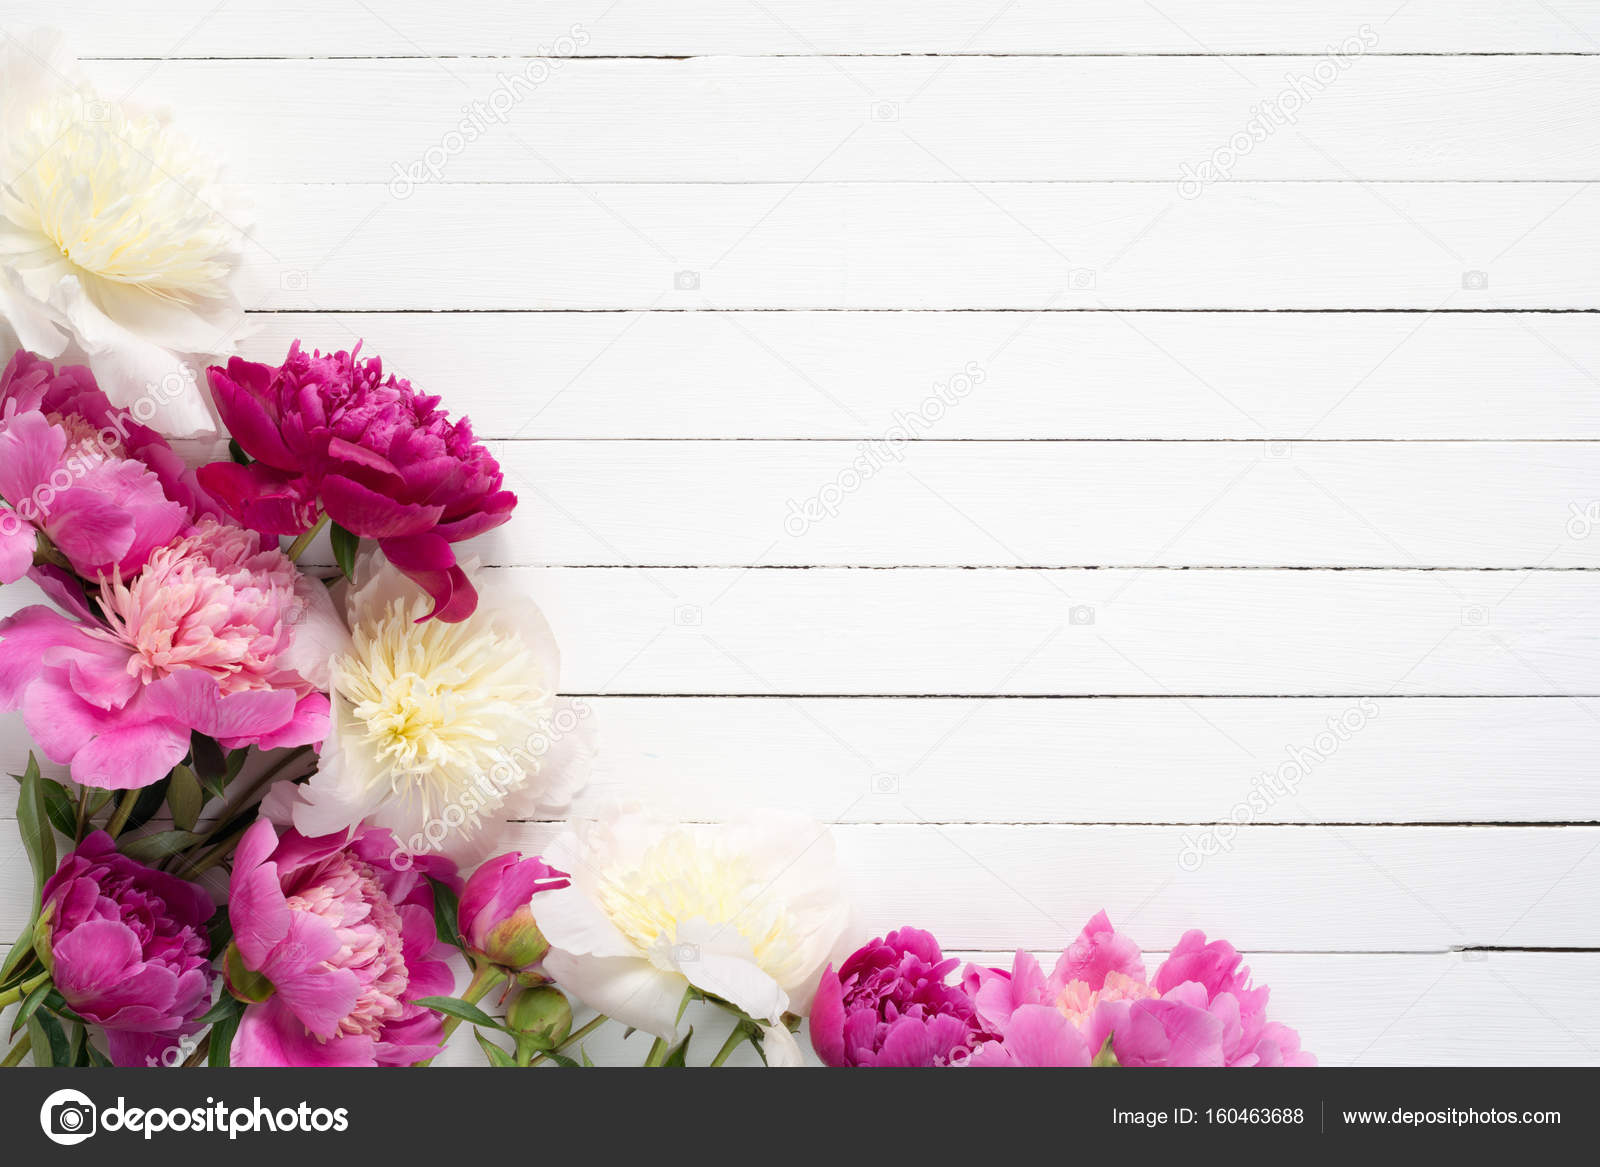 Peonies Peonies Floral Frame On White Wooden Background Stock